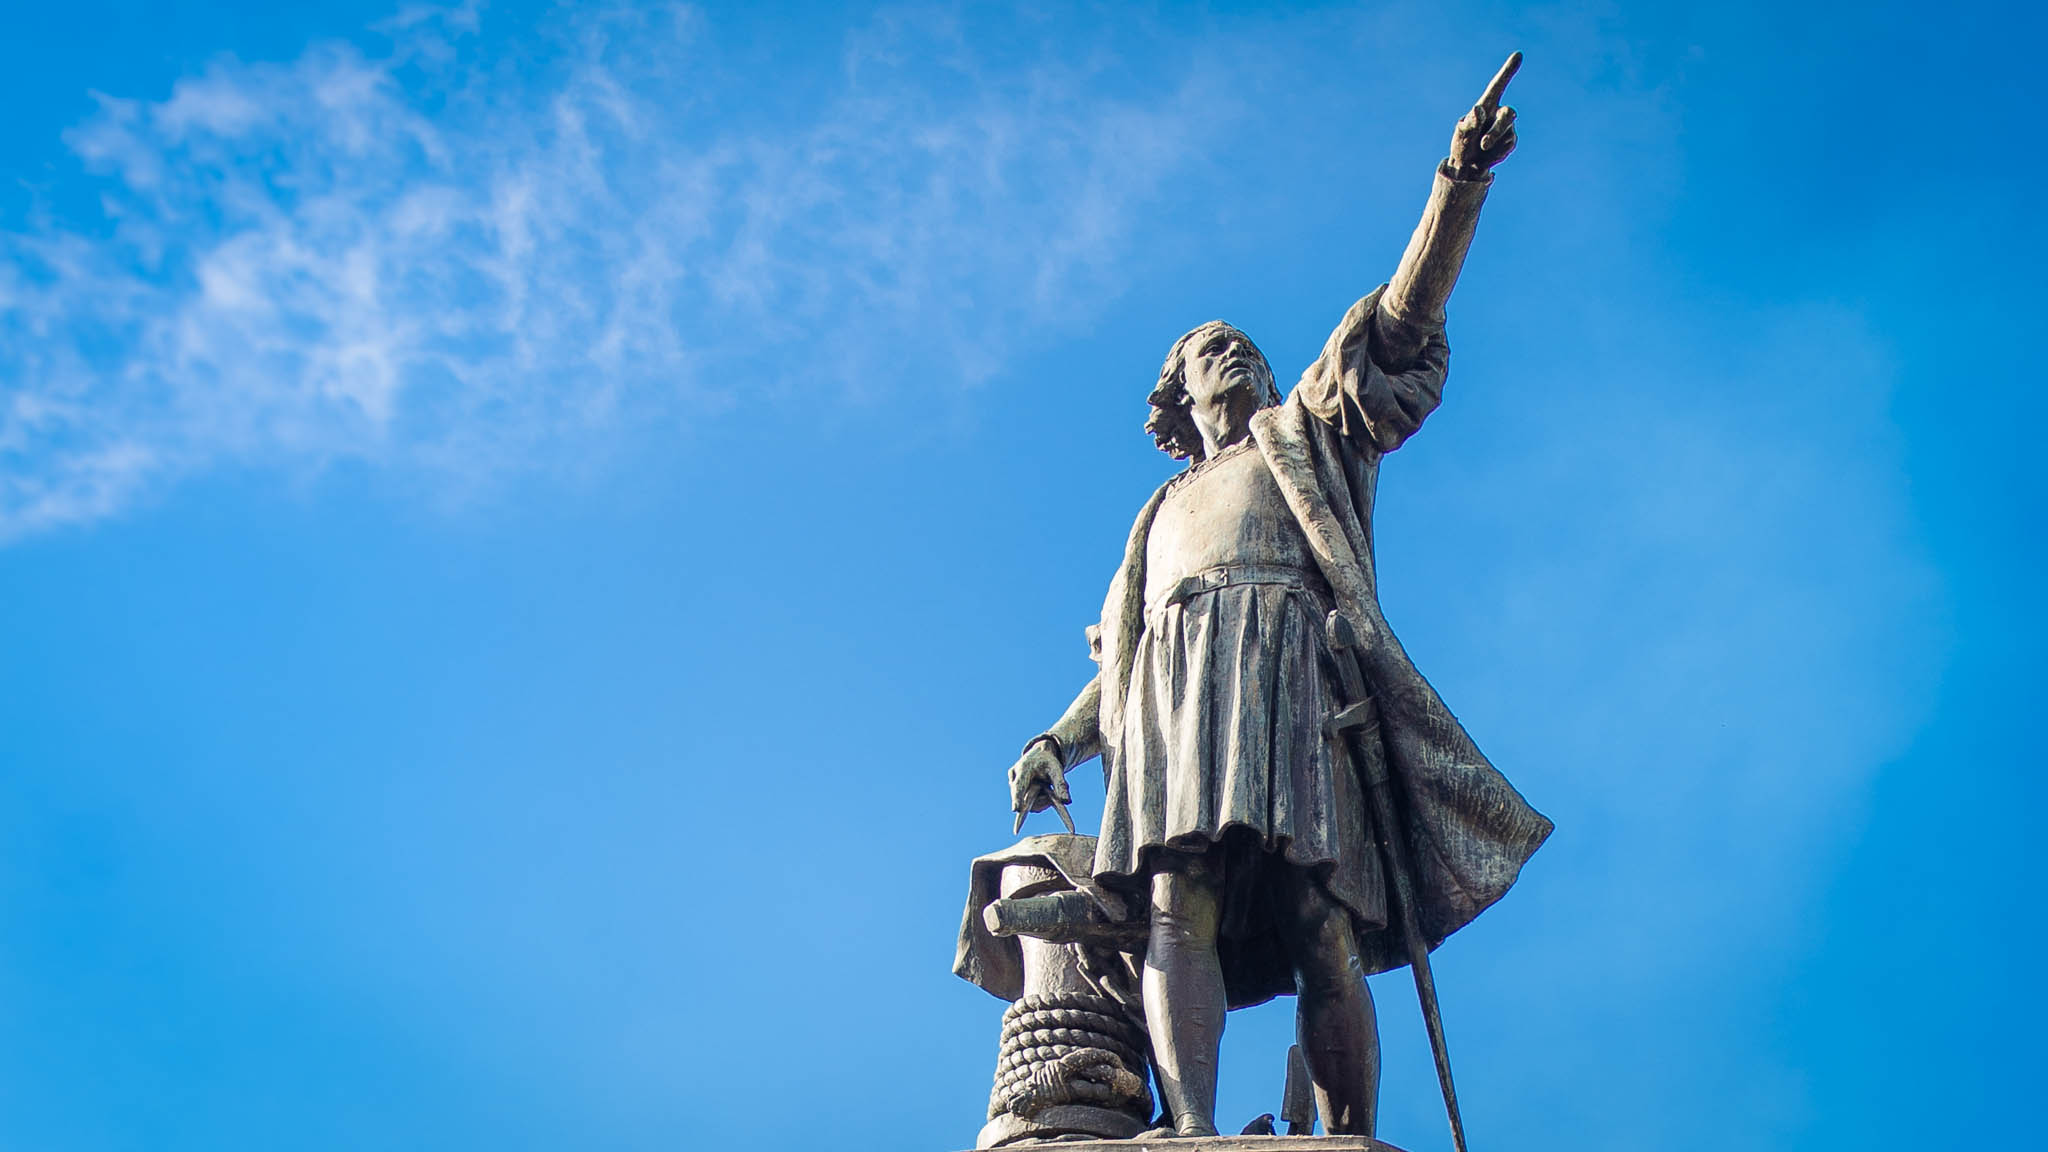 On Columbus Day, Exploring The Mystery Of Christopher